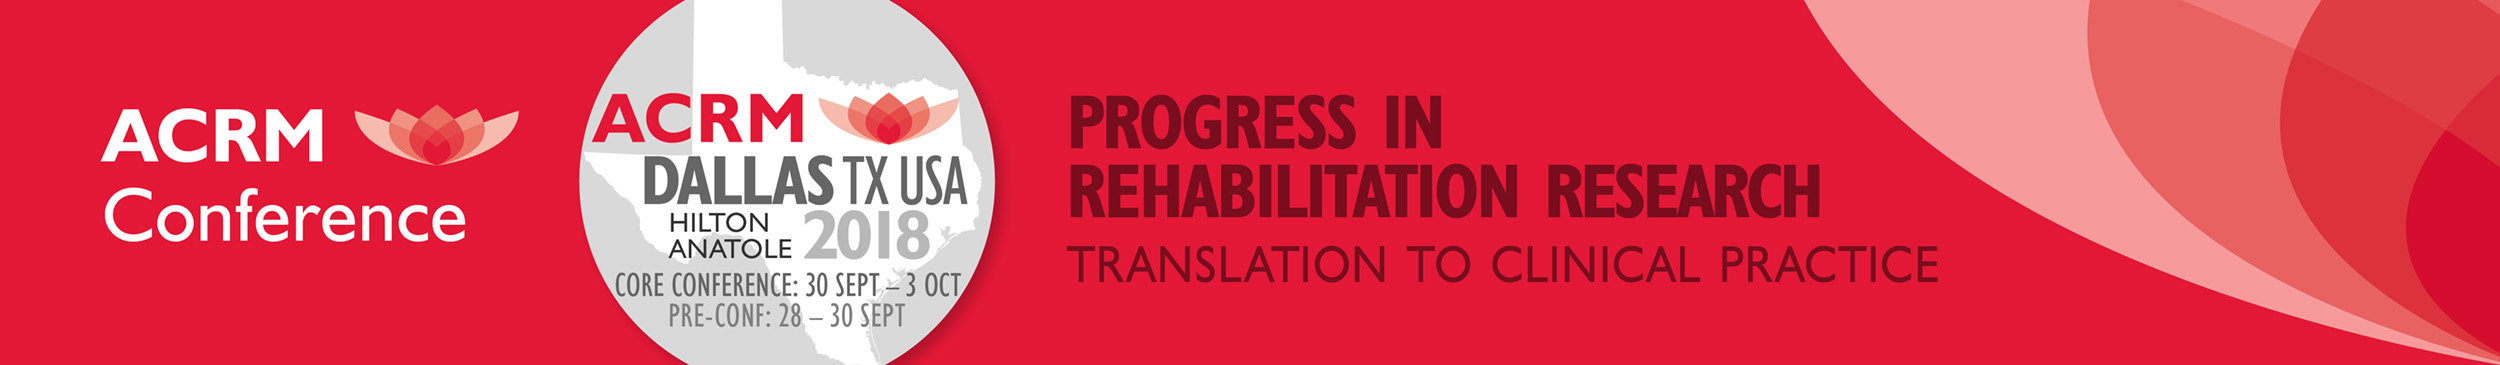 ACRM Annual Conference Progress in Rehabilitation Research